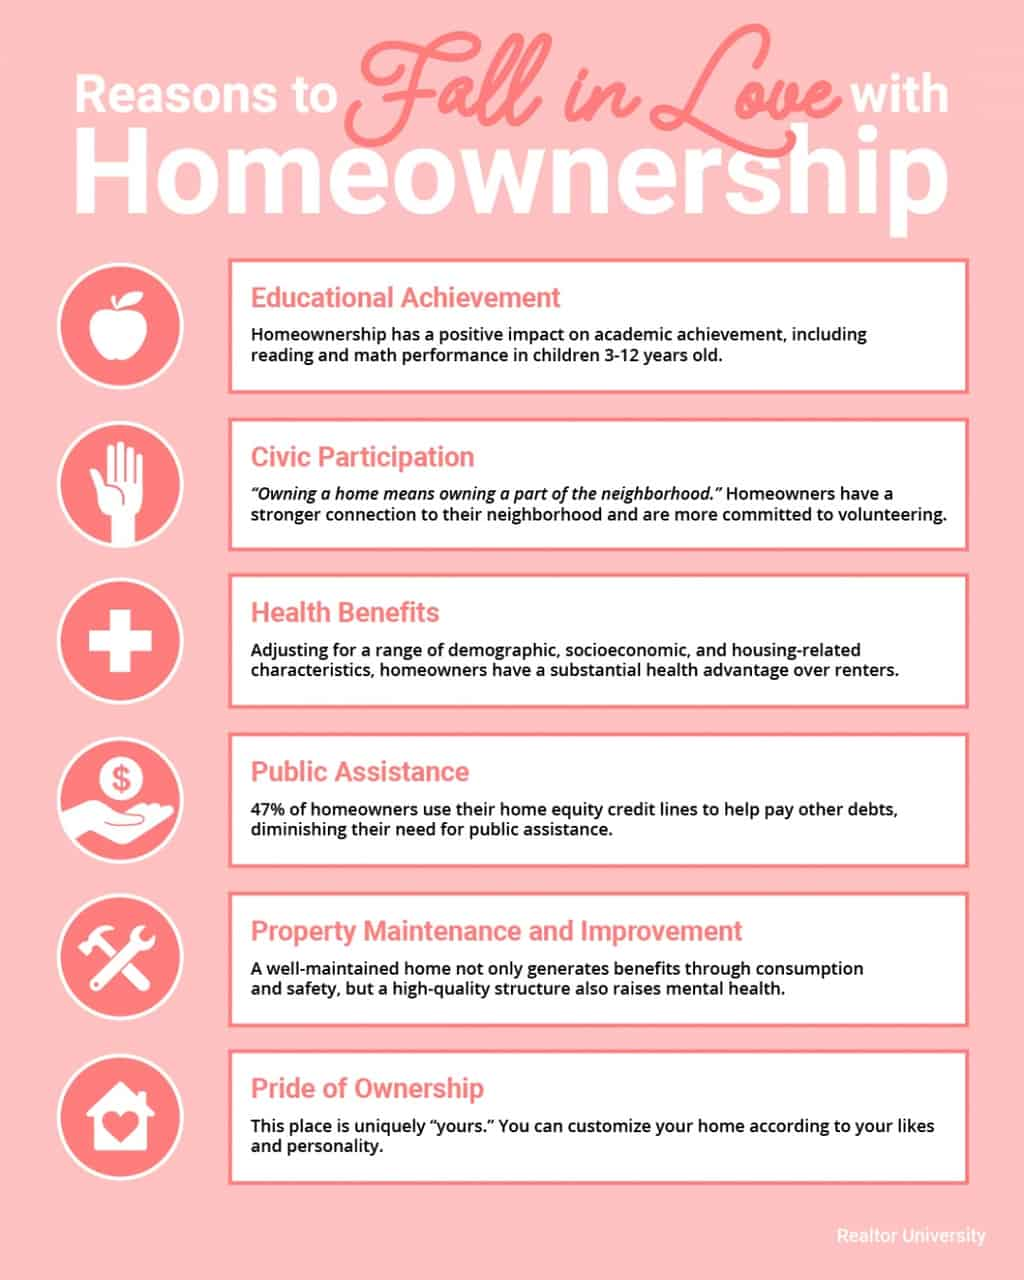 Reasons to Fall in Love with Homeownership